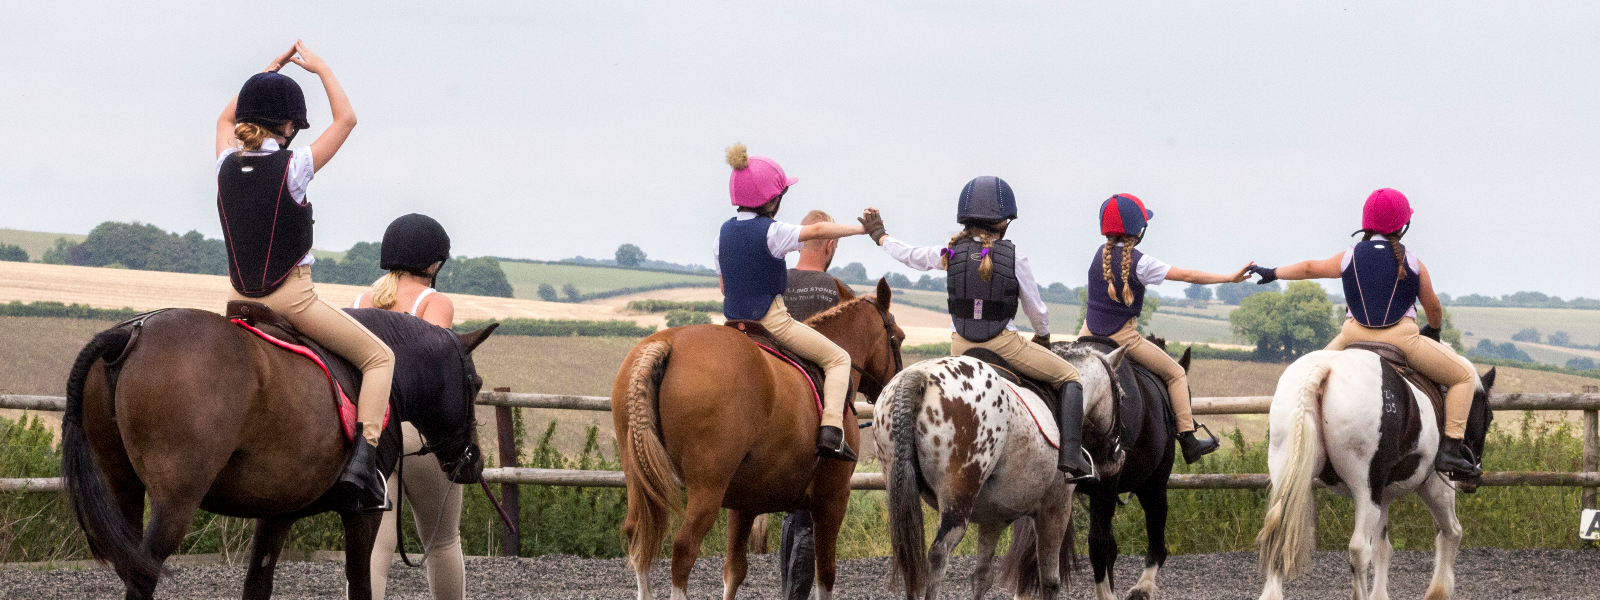 Welcome to Rectory Farm Riding Stables!